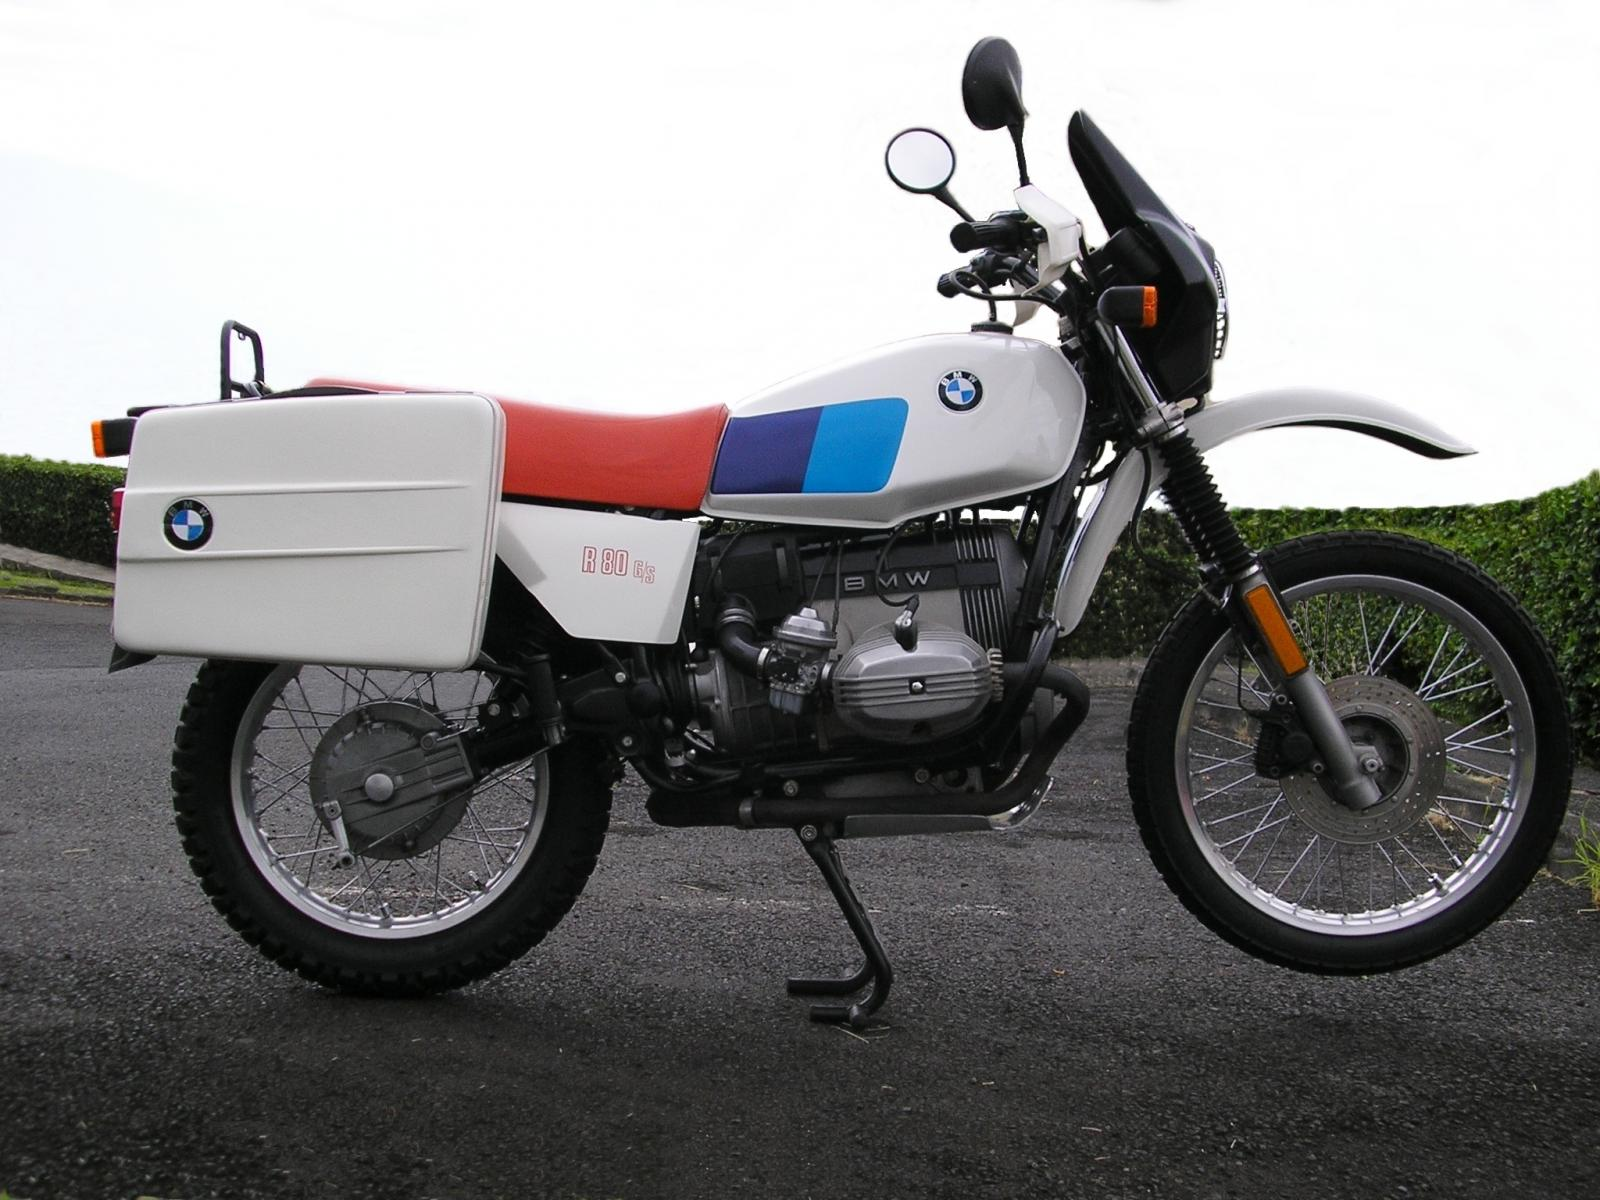 BMW R65 (reduced effect) 1991 images #77437